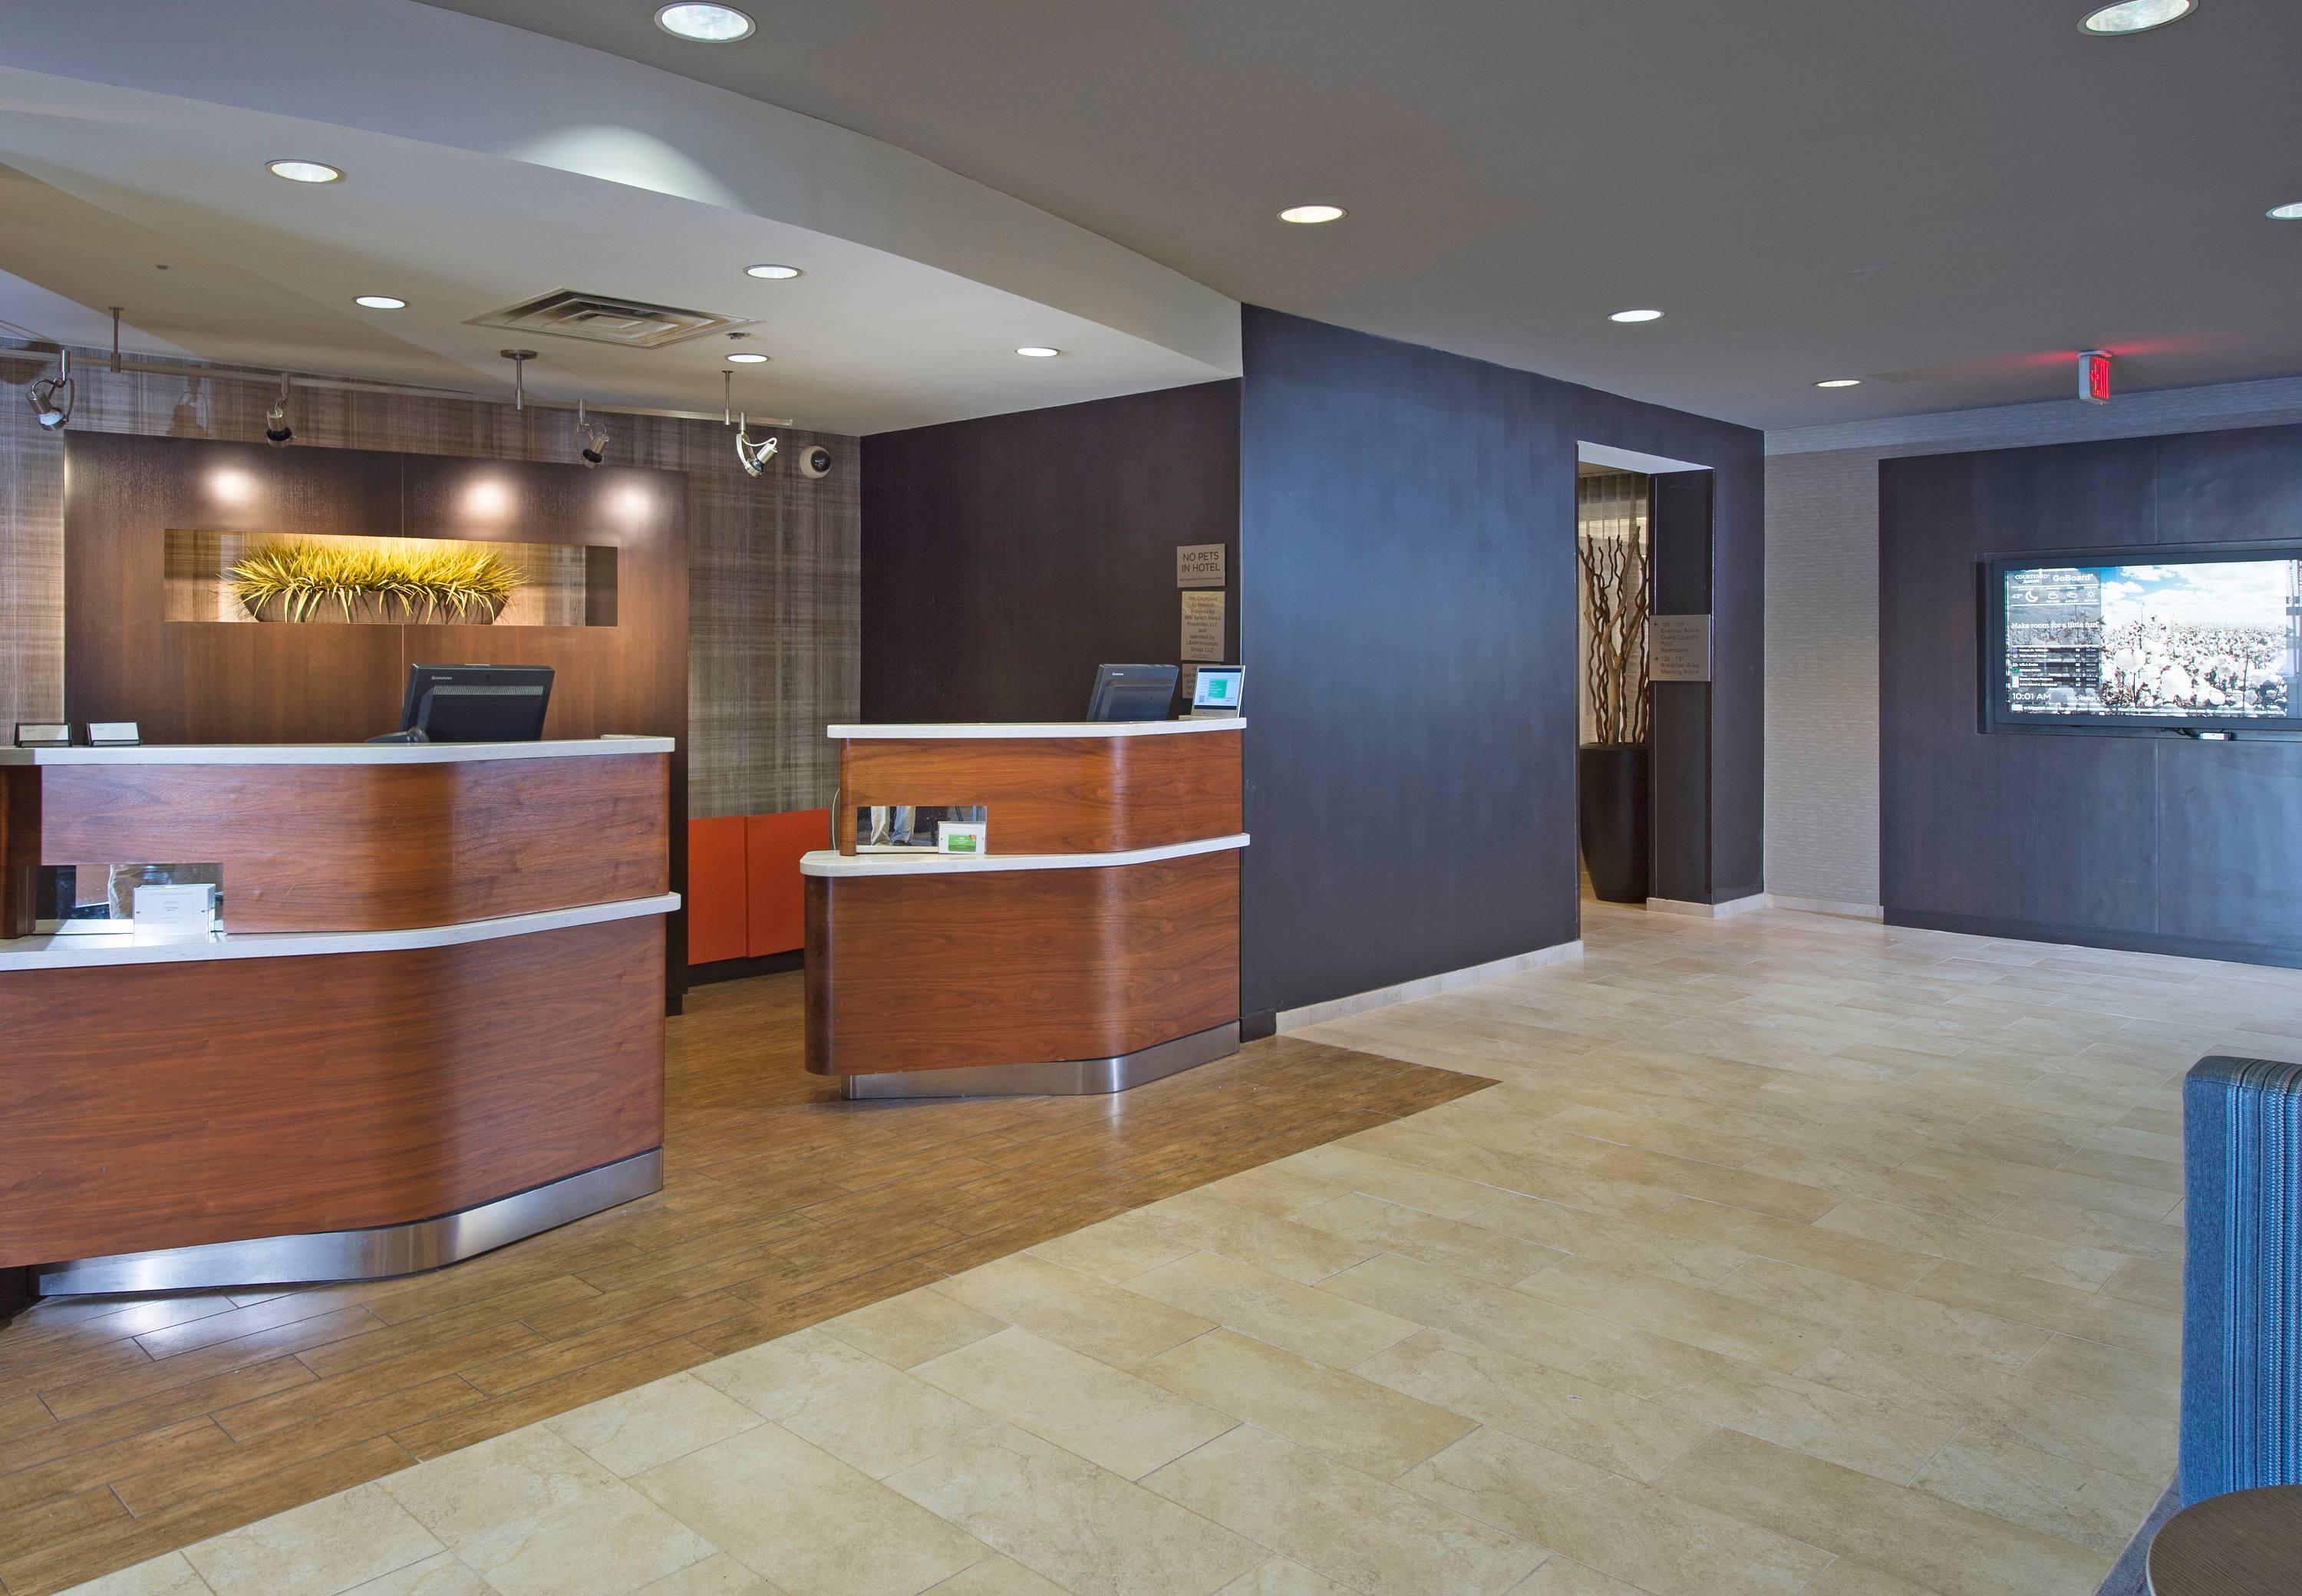 Courtyard by Marriott Dothan image 11